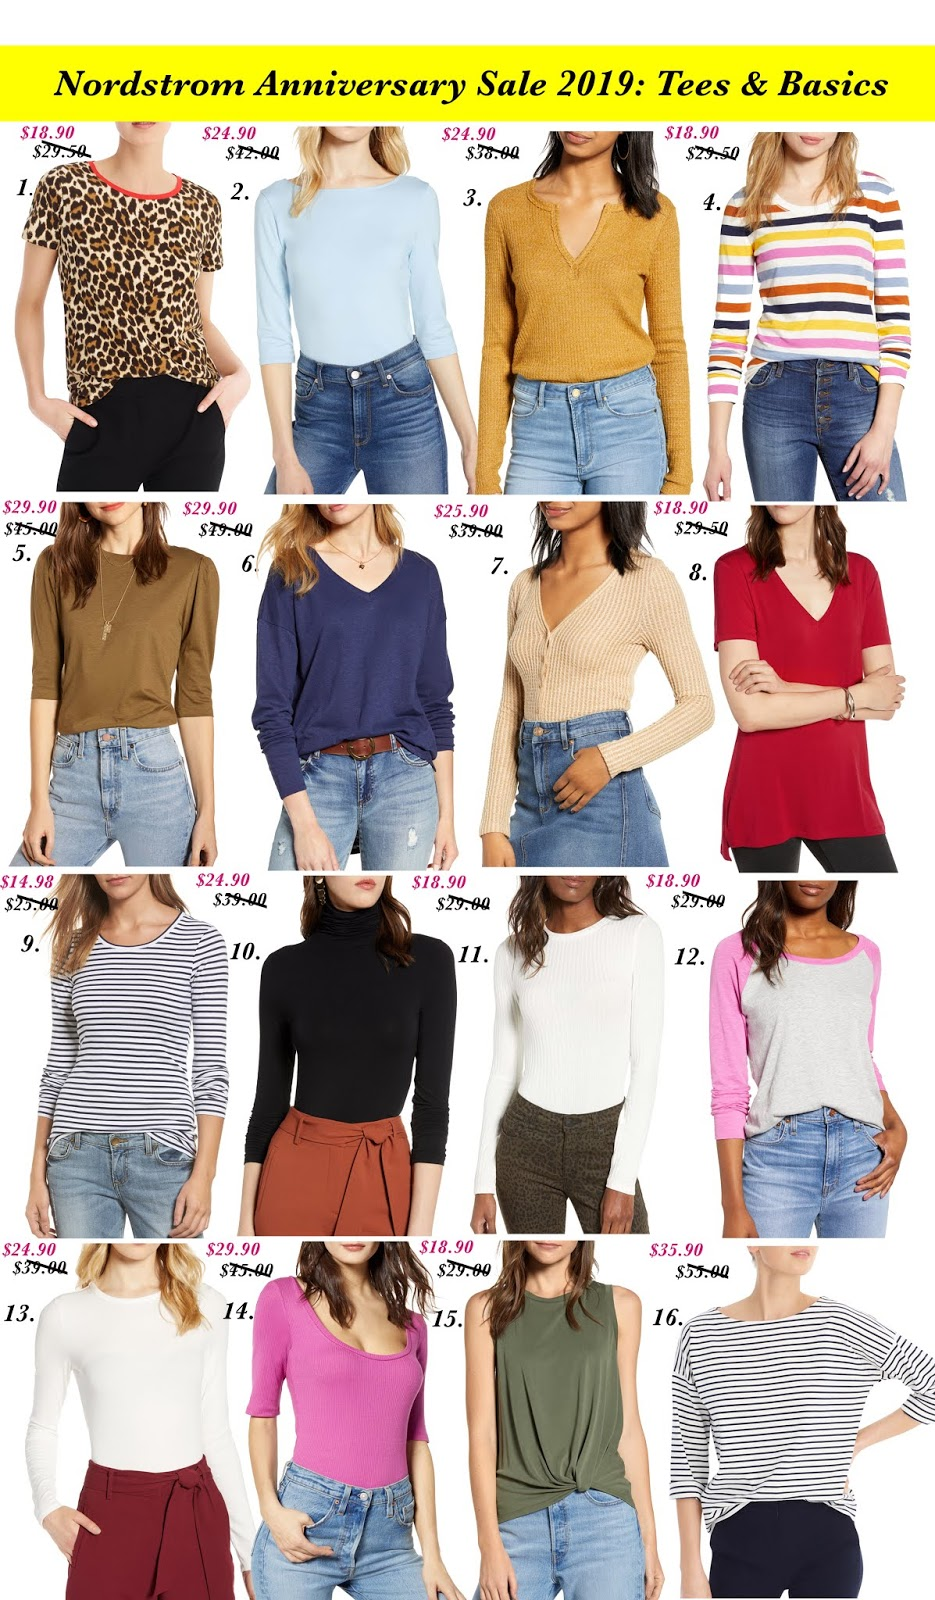 Nordstrom Anniversary Sale 2019: Favorites in Every Category for Women + a Giveaway!! - Something Delightful Blog